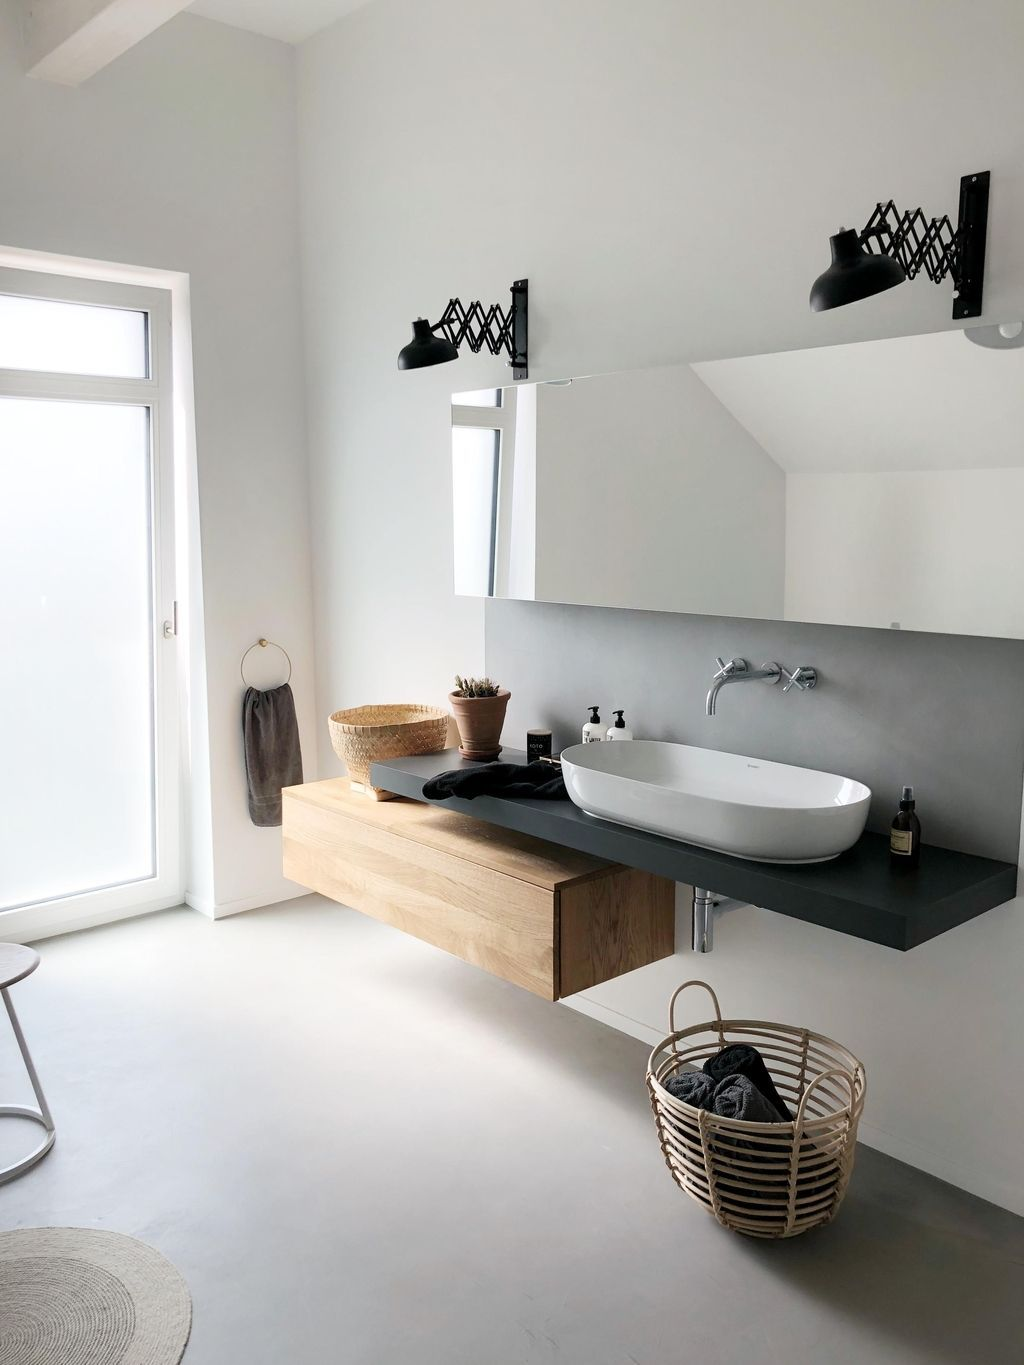 Badezimmer Egal Welche Grosse So Machst Du Es Schon Salledebain Simple Bathroom Bathroom Design Modern Bathroom